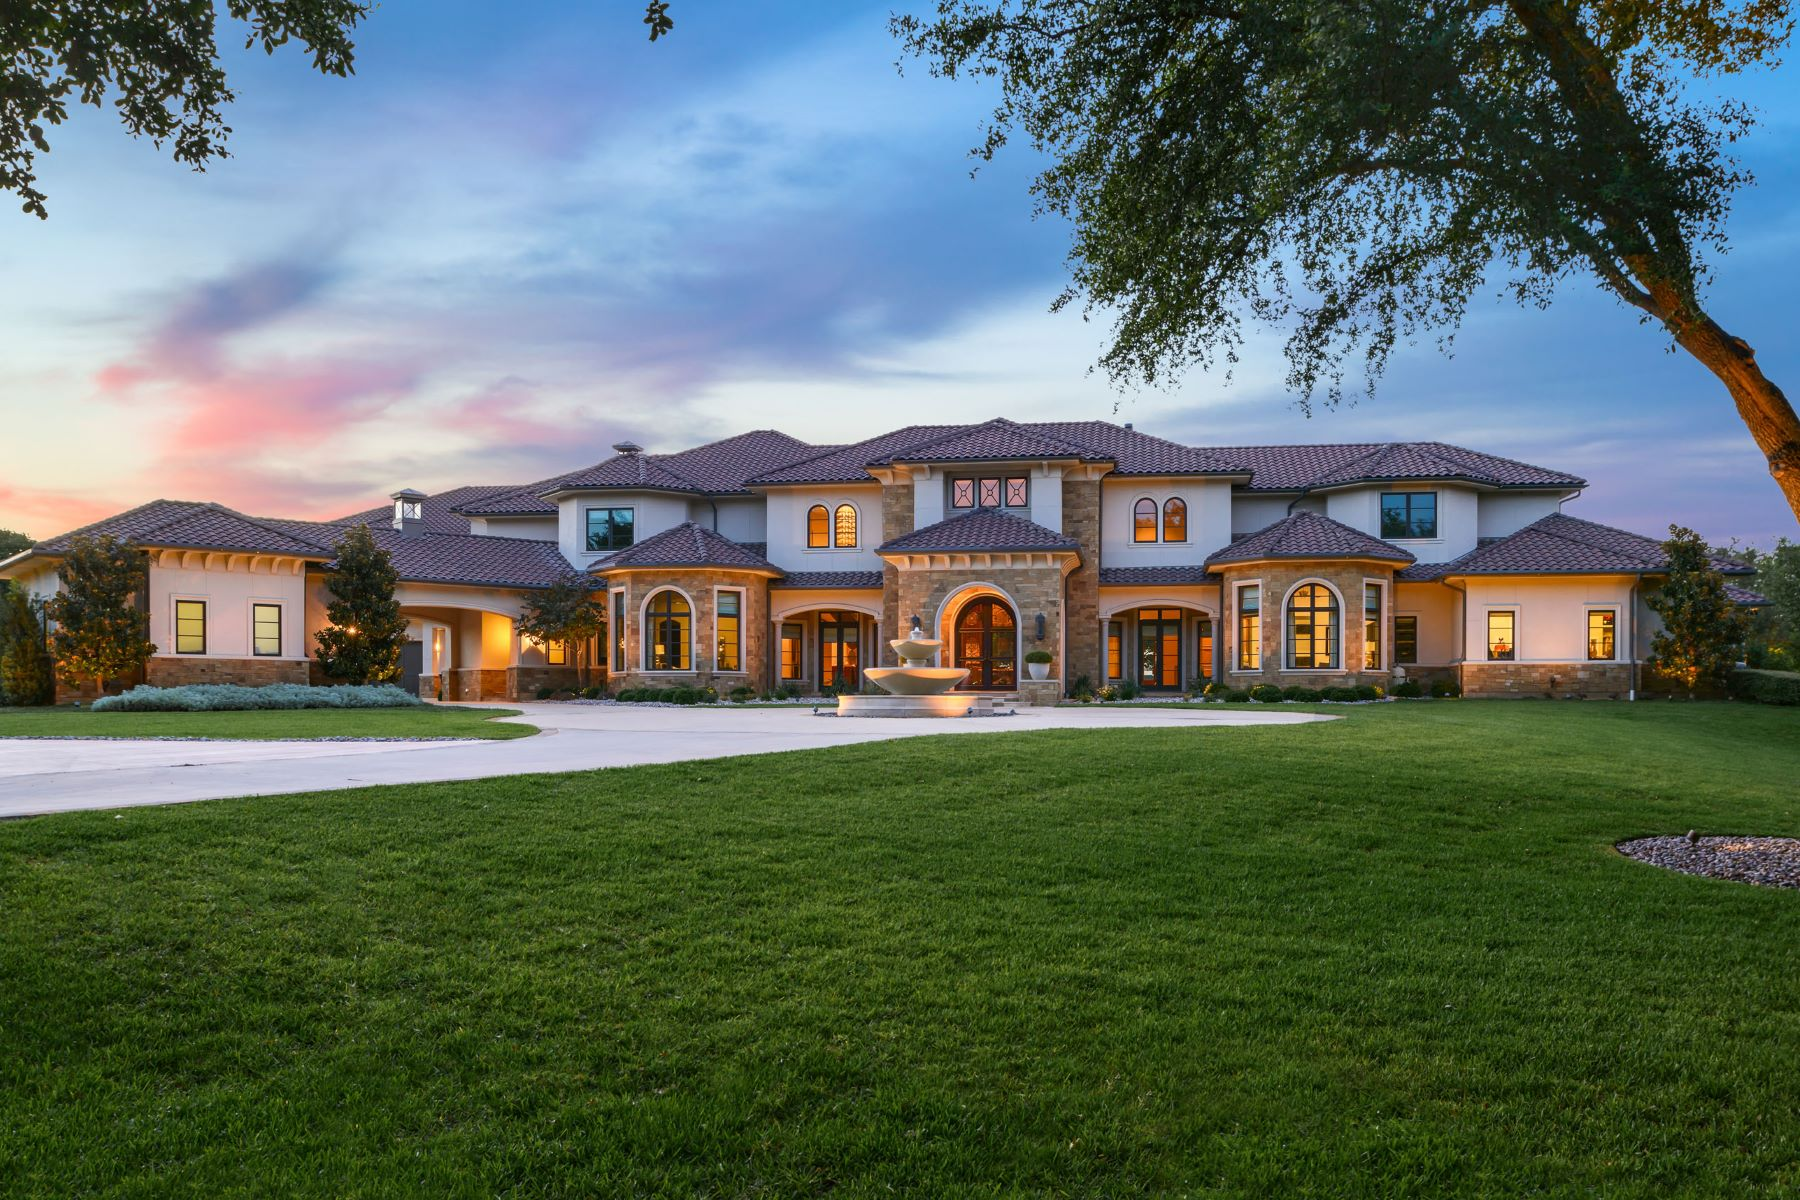 Single Family Homes for Sale at Sophisticated Estate Home on 4.7 Acres in Carroll ISD 940 W. Dove Road Southlake, Texas 76092 United States